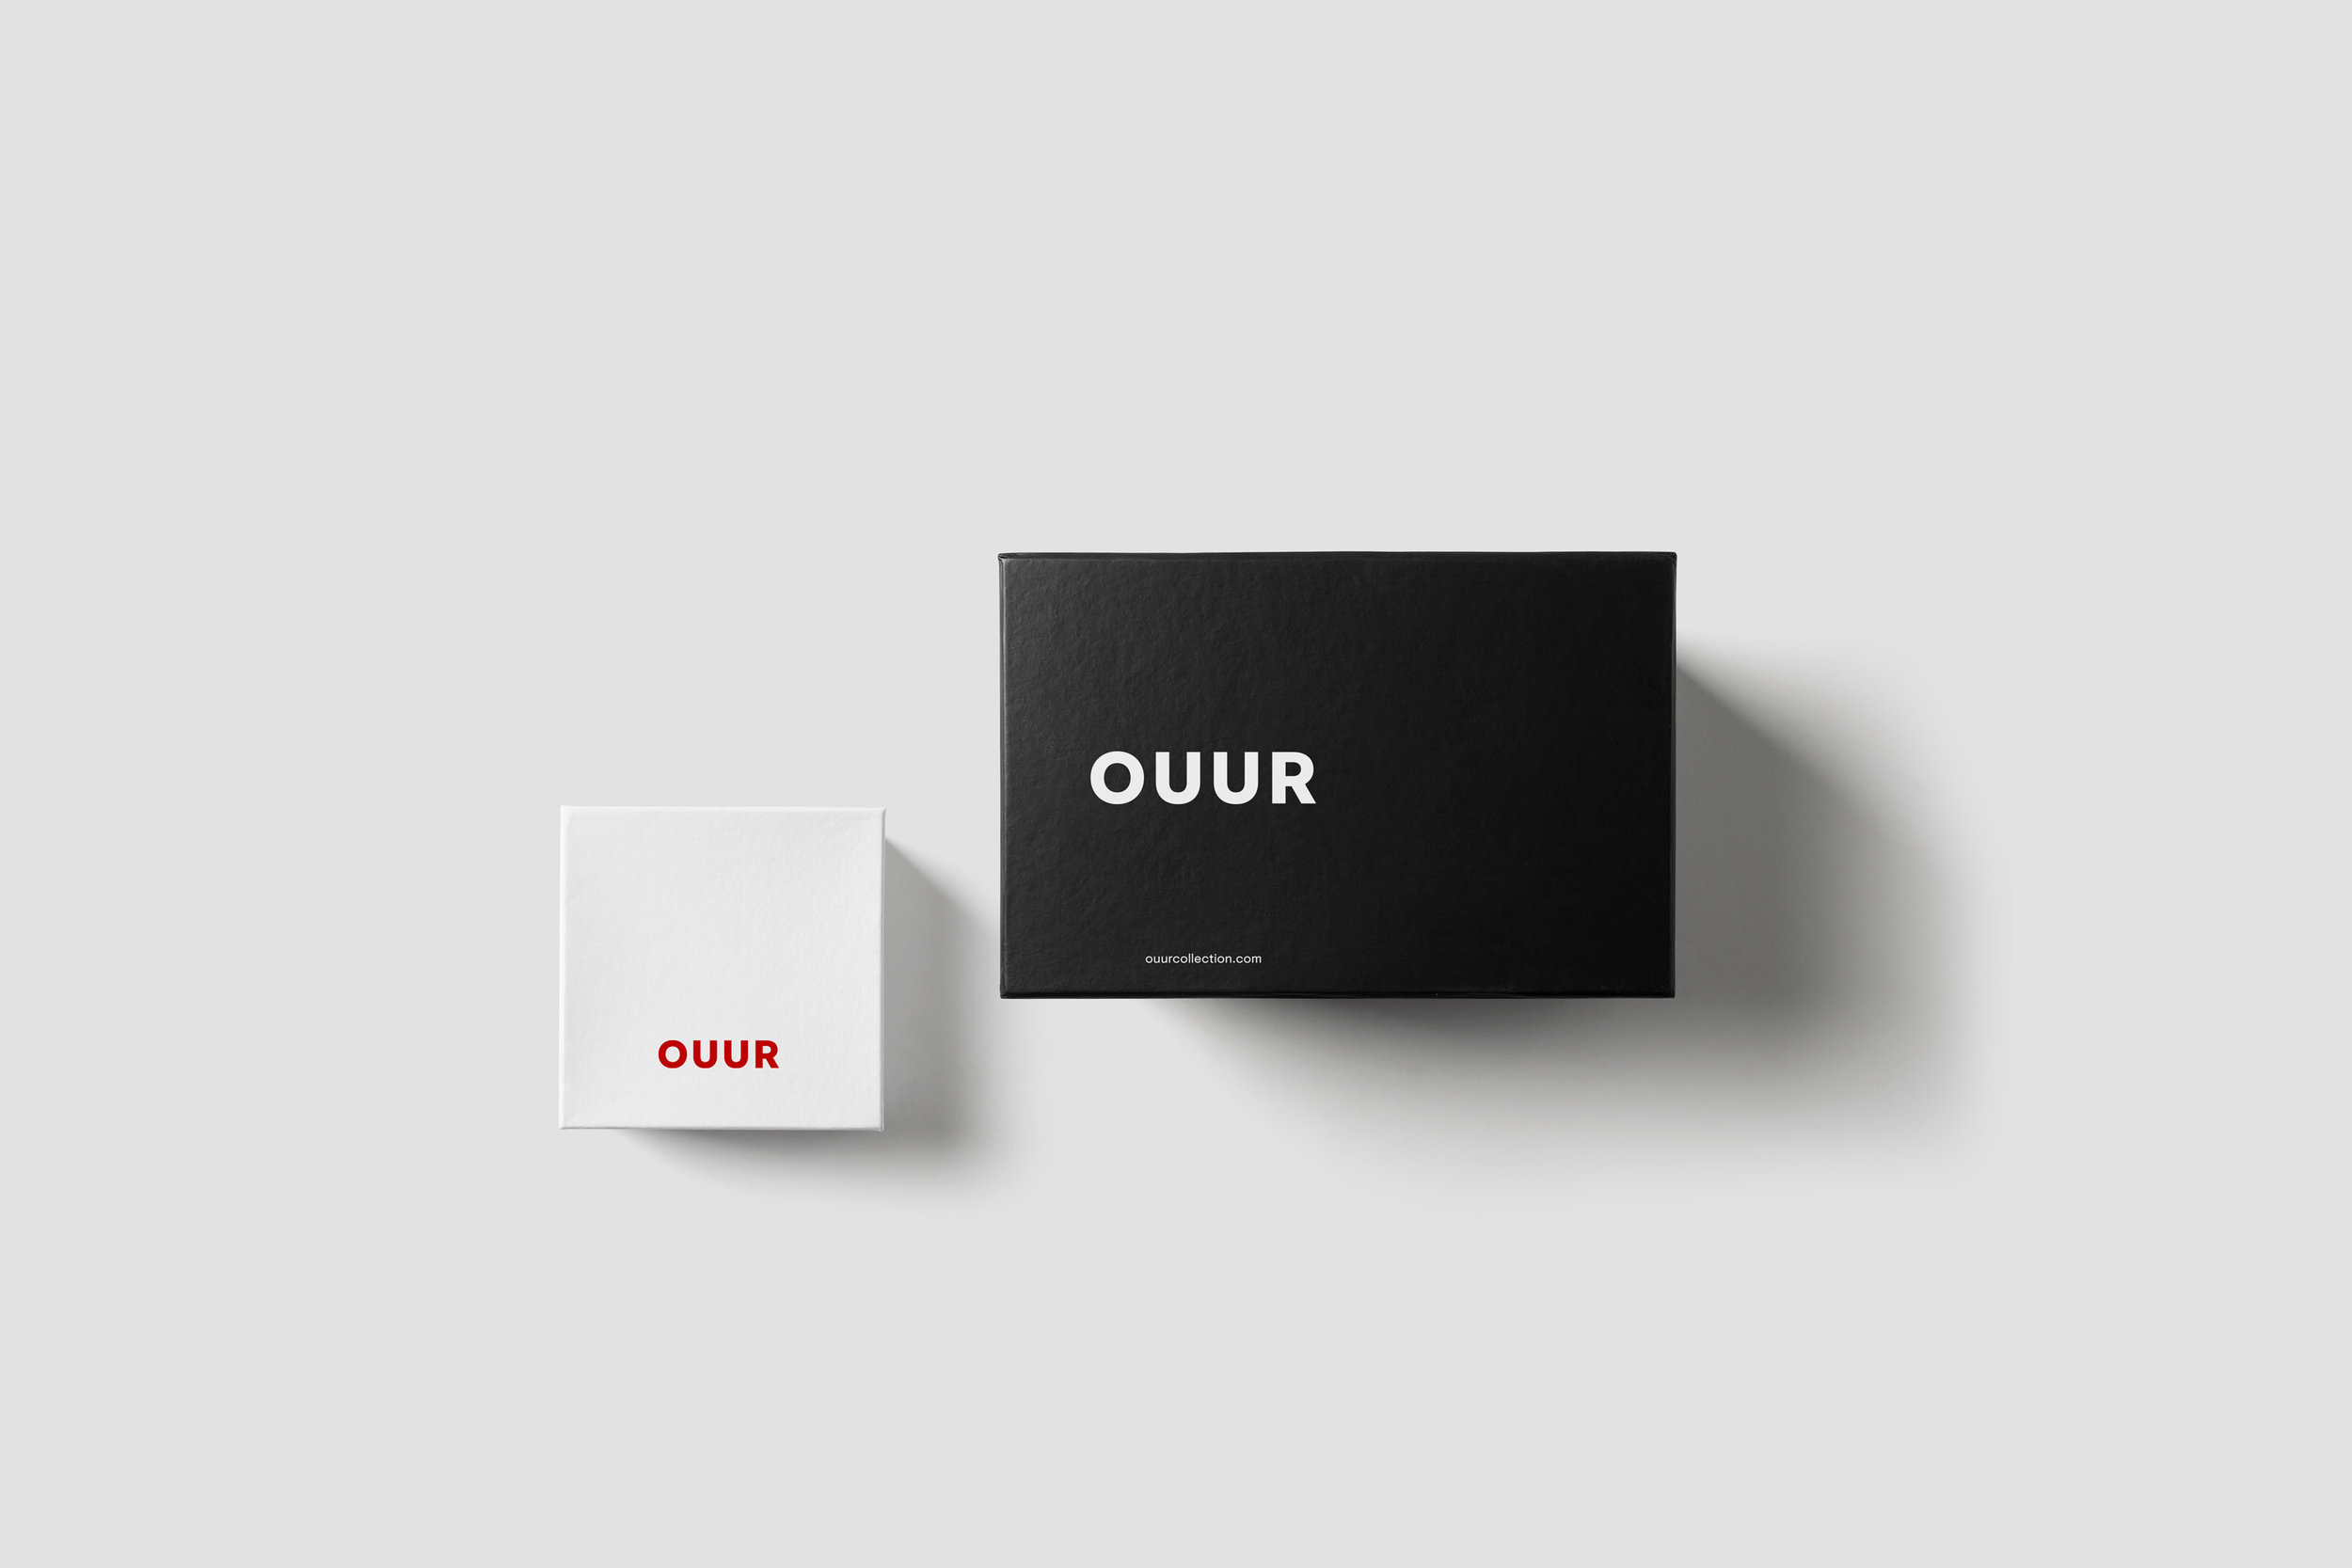 ouur_collection_boxes01.jpg